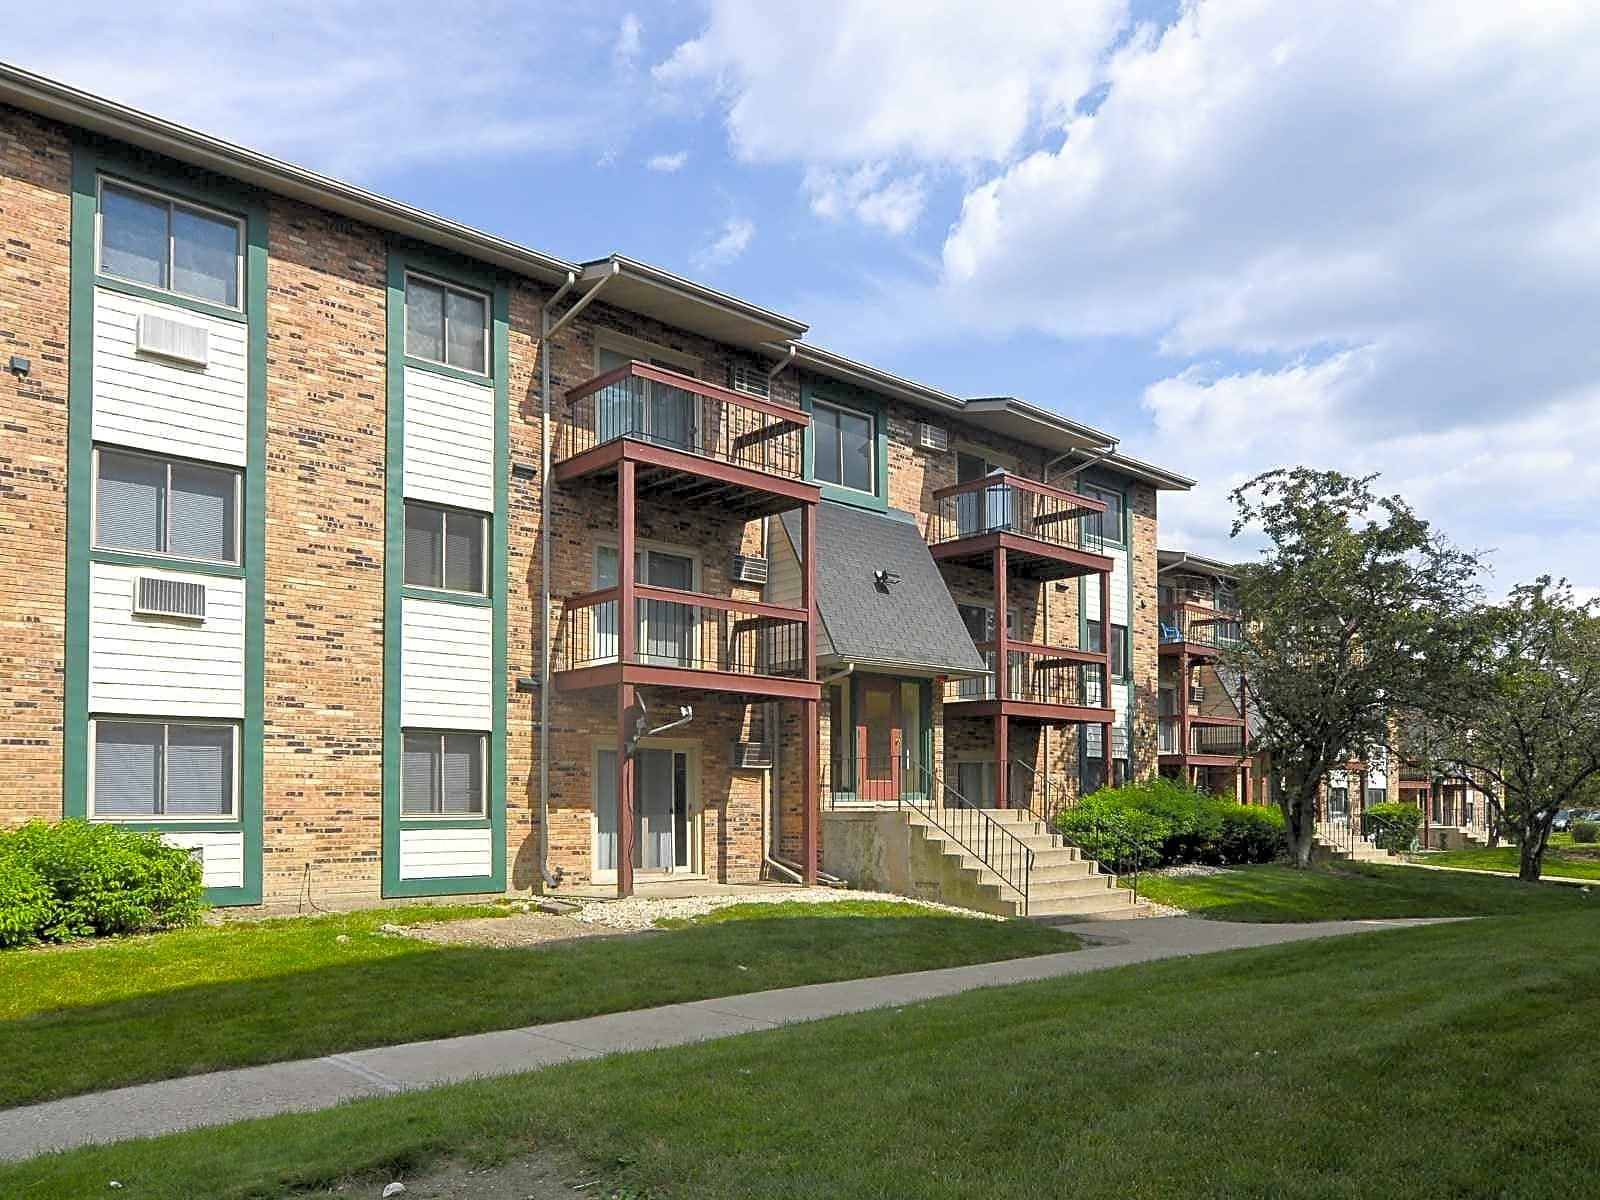 Olympic Village Apartments - Chicago Heights, IL 60411